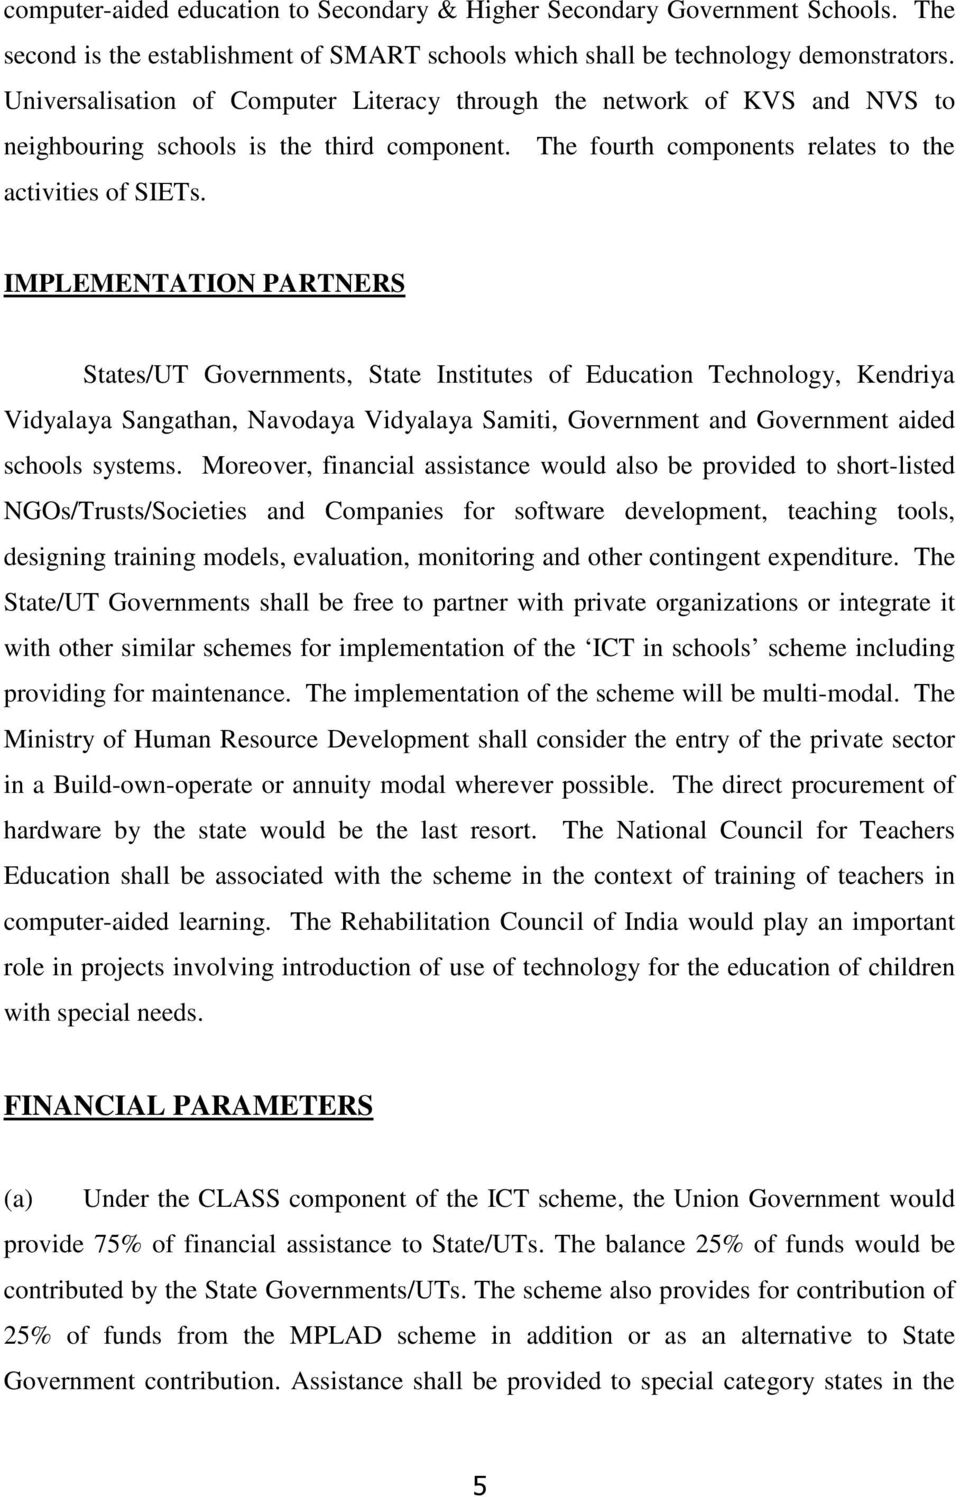 IMPLEMENTATION PARTNERS States/UT Governments, State Institutes of Education Technology, Kendriya Vidyalaya Sangathan, Navodaya Vidyalaya Samiti, Government and Government aided schools systems.